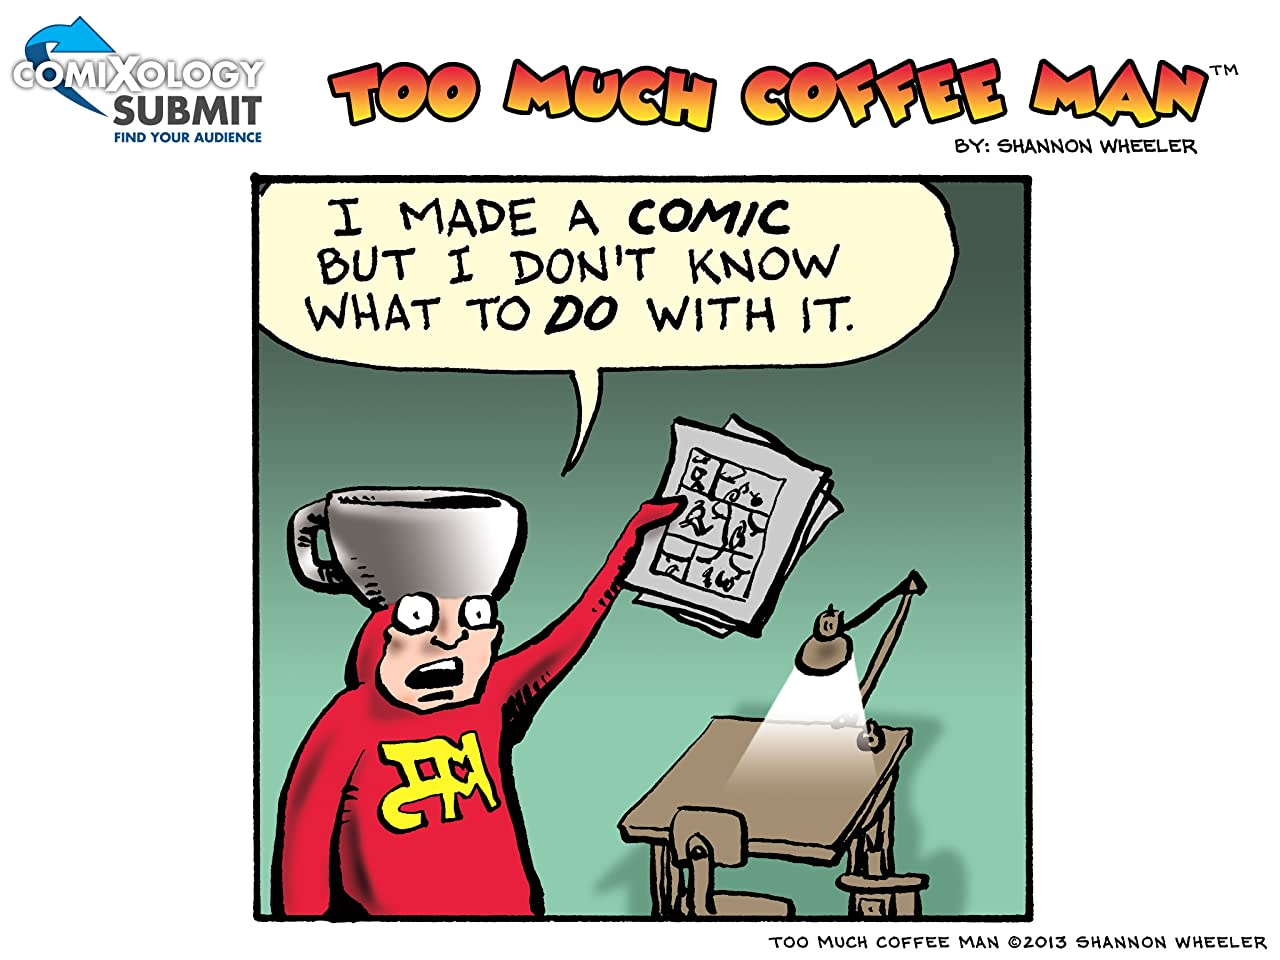 Too Much Coffee Man: comiXology Submit Strips #1